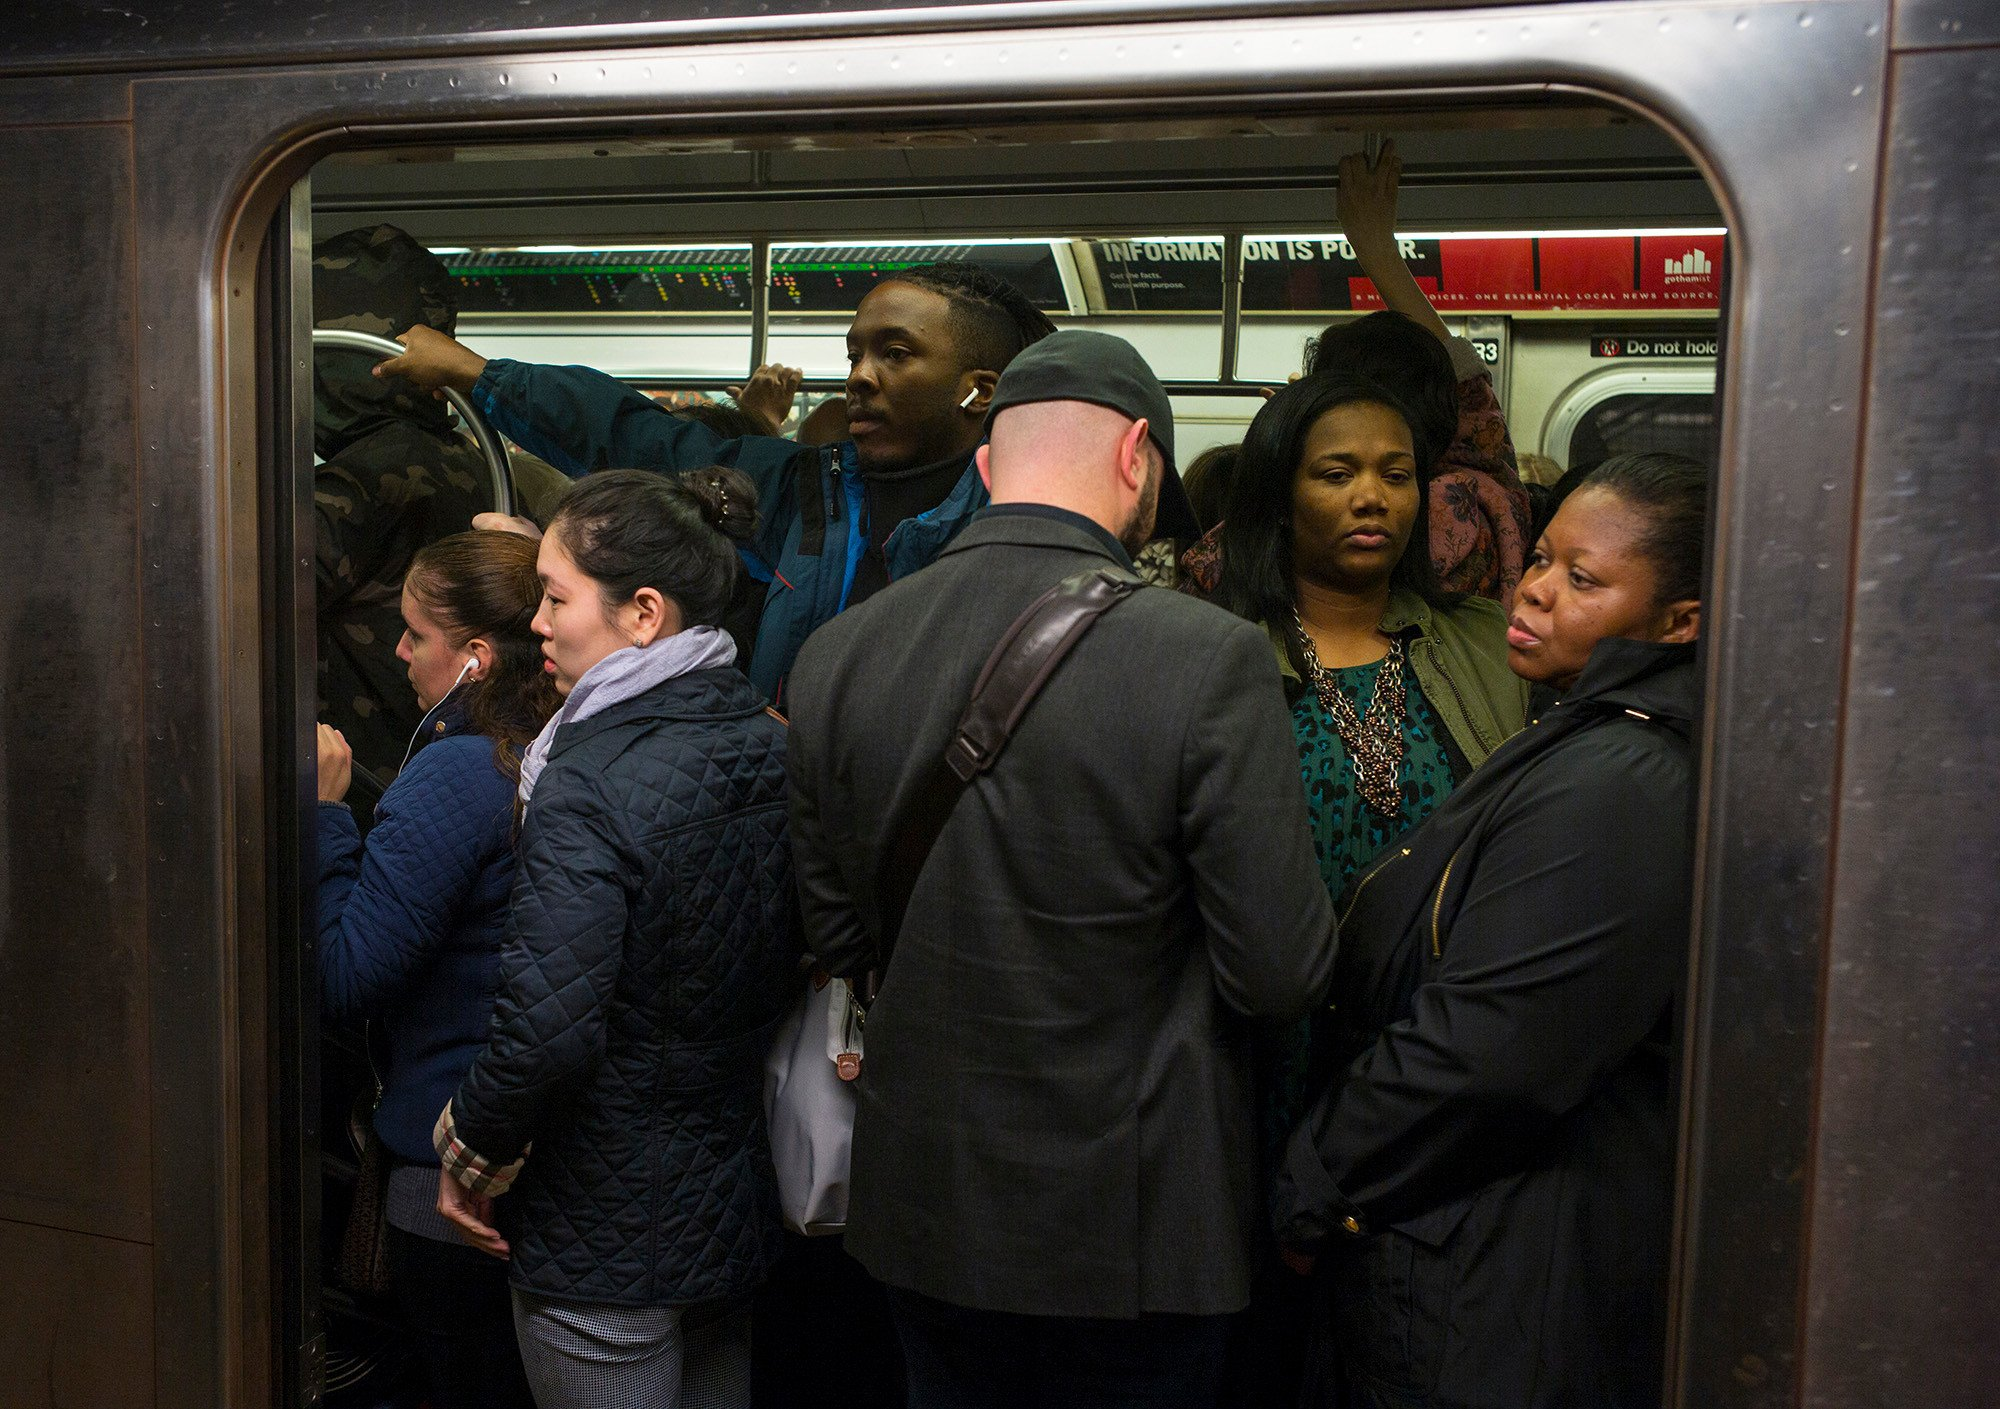 The 'improved' MTA is still a complete mess